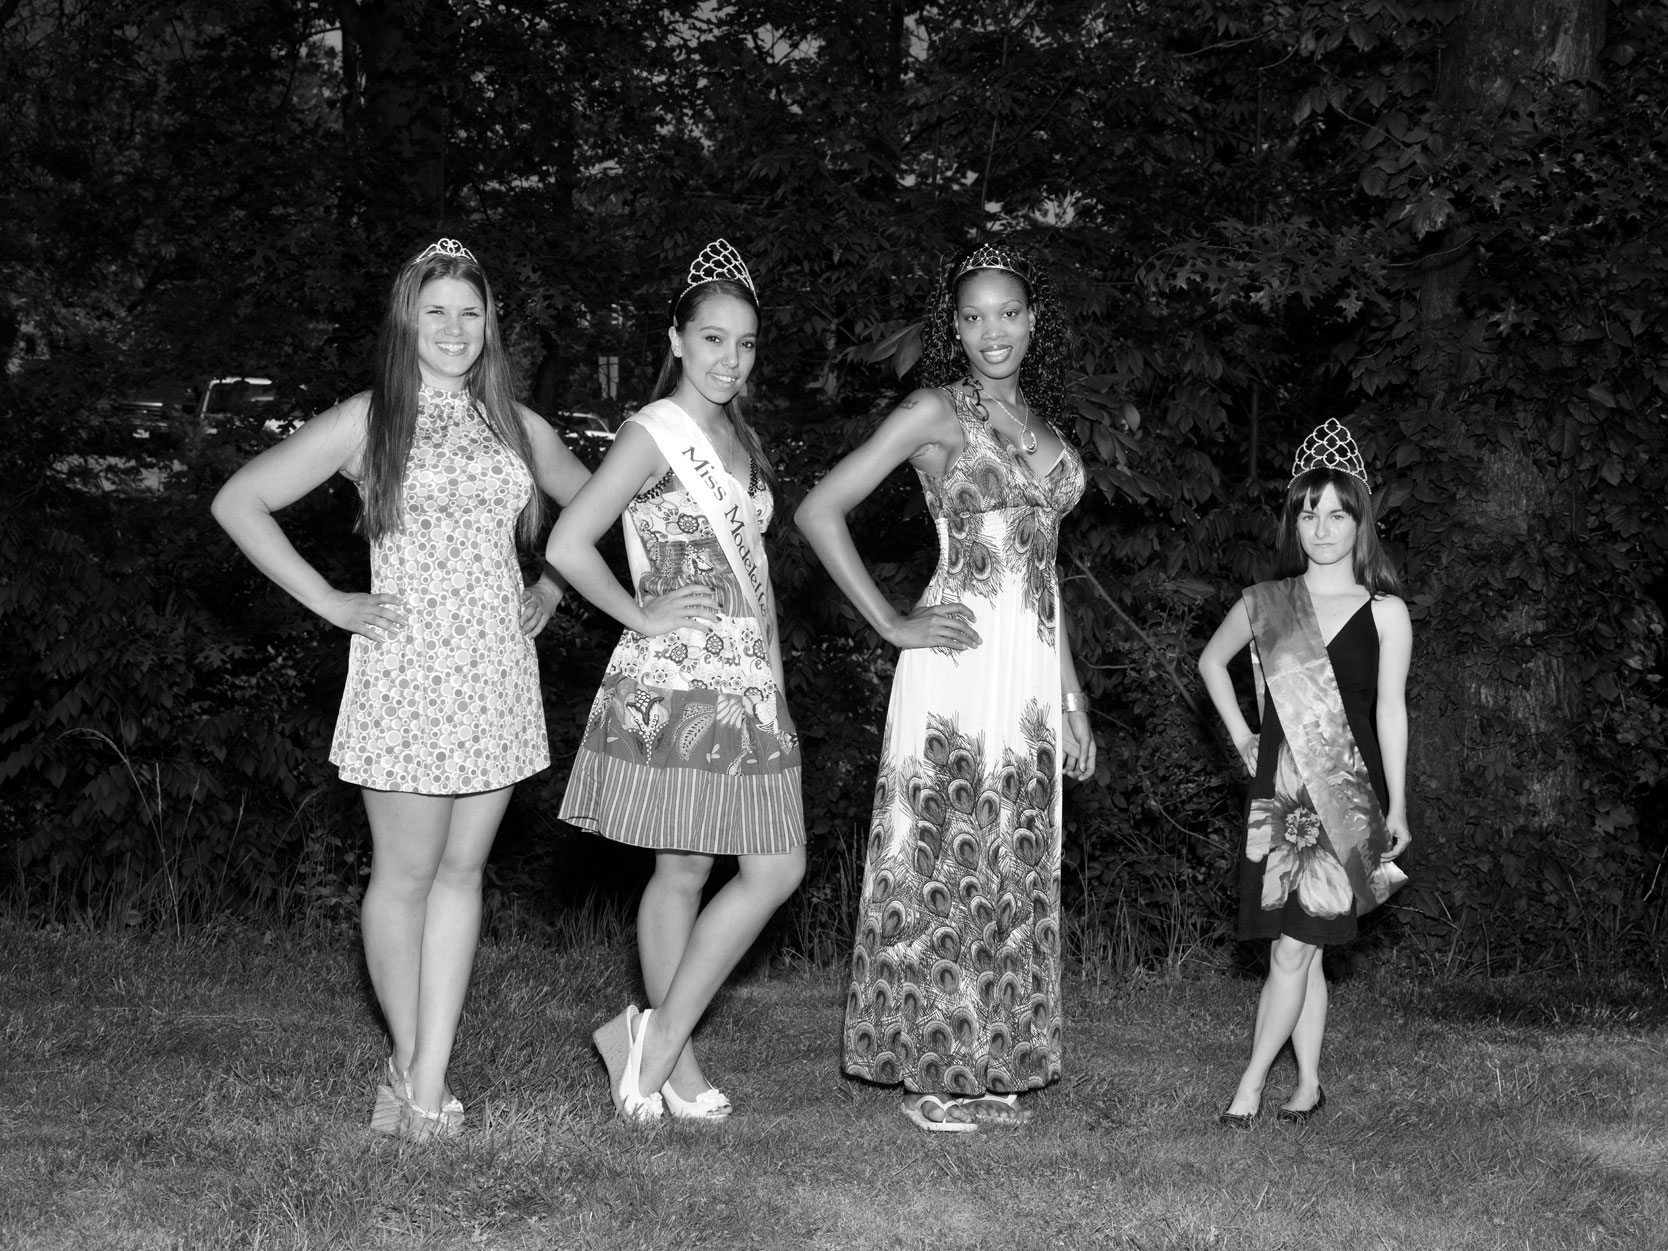 Miss Model Contestants. Cleveland, Ohio.